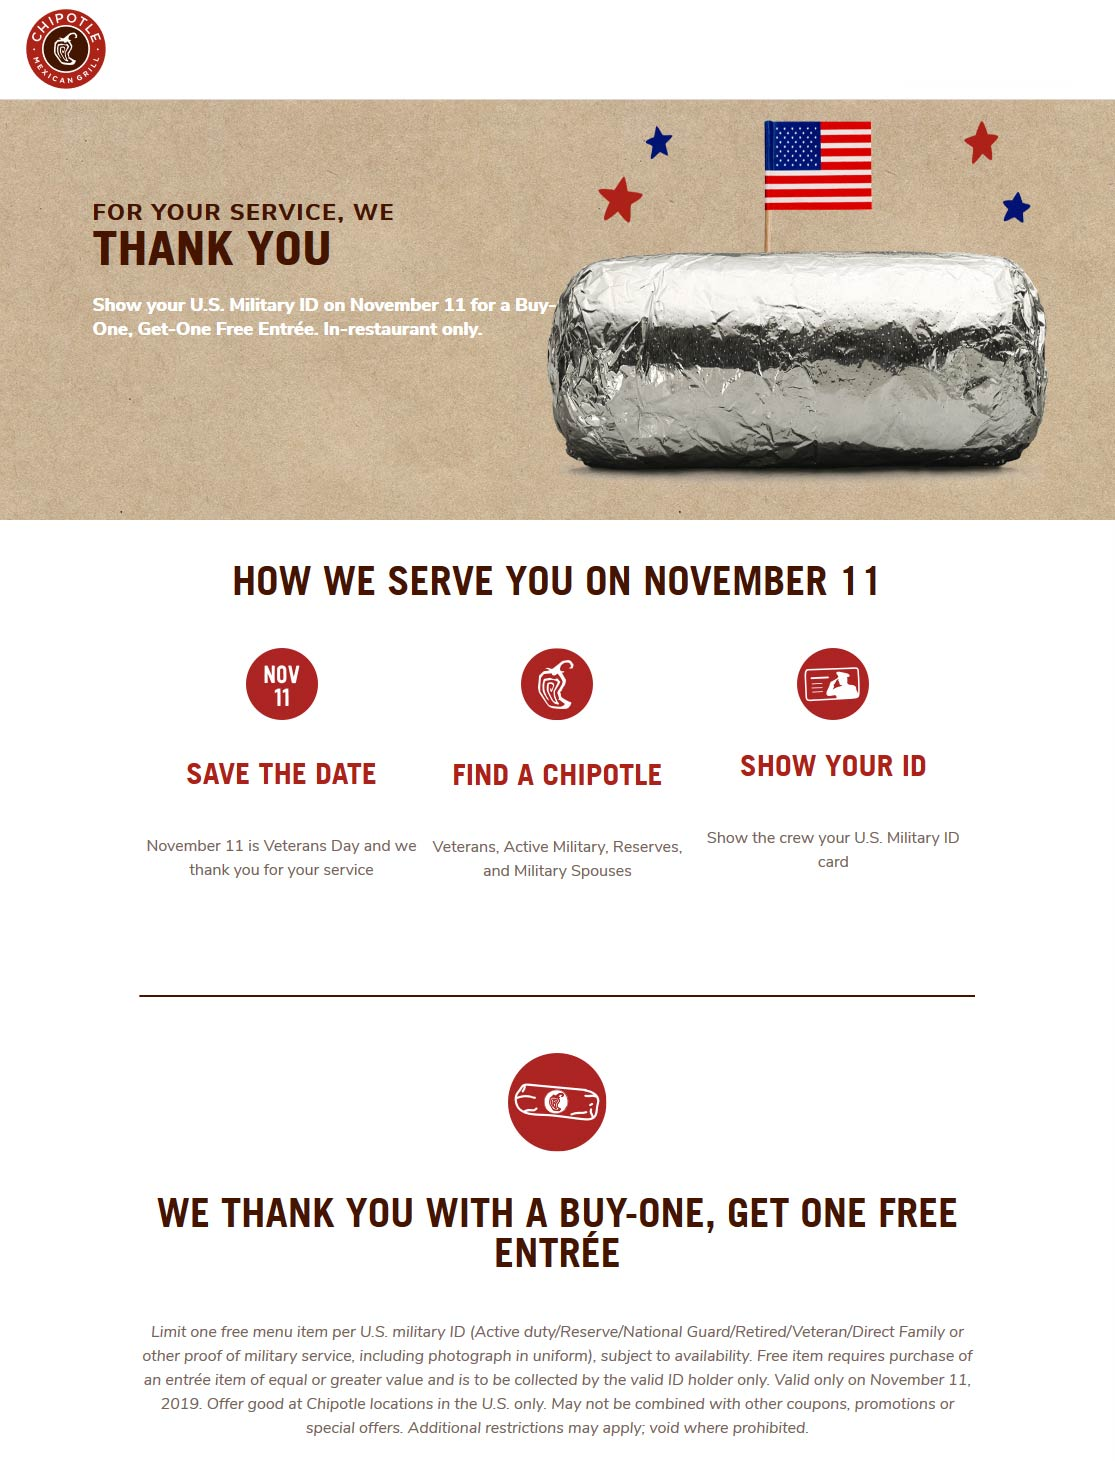 Chipotle coupons & promo code for [February 2021]